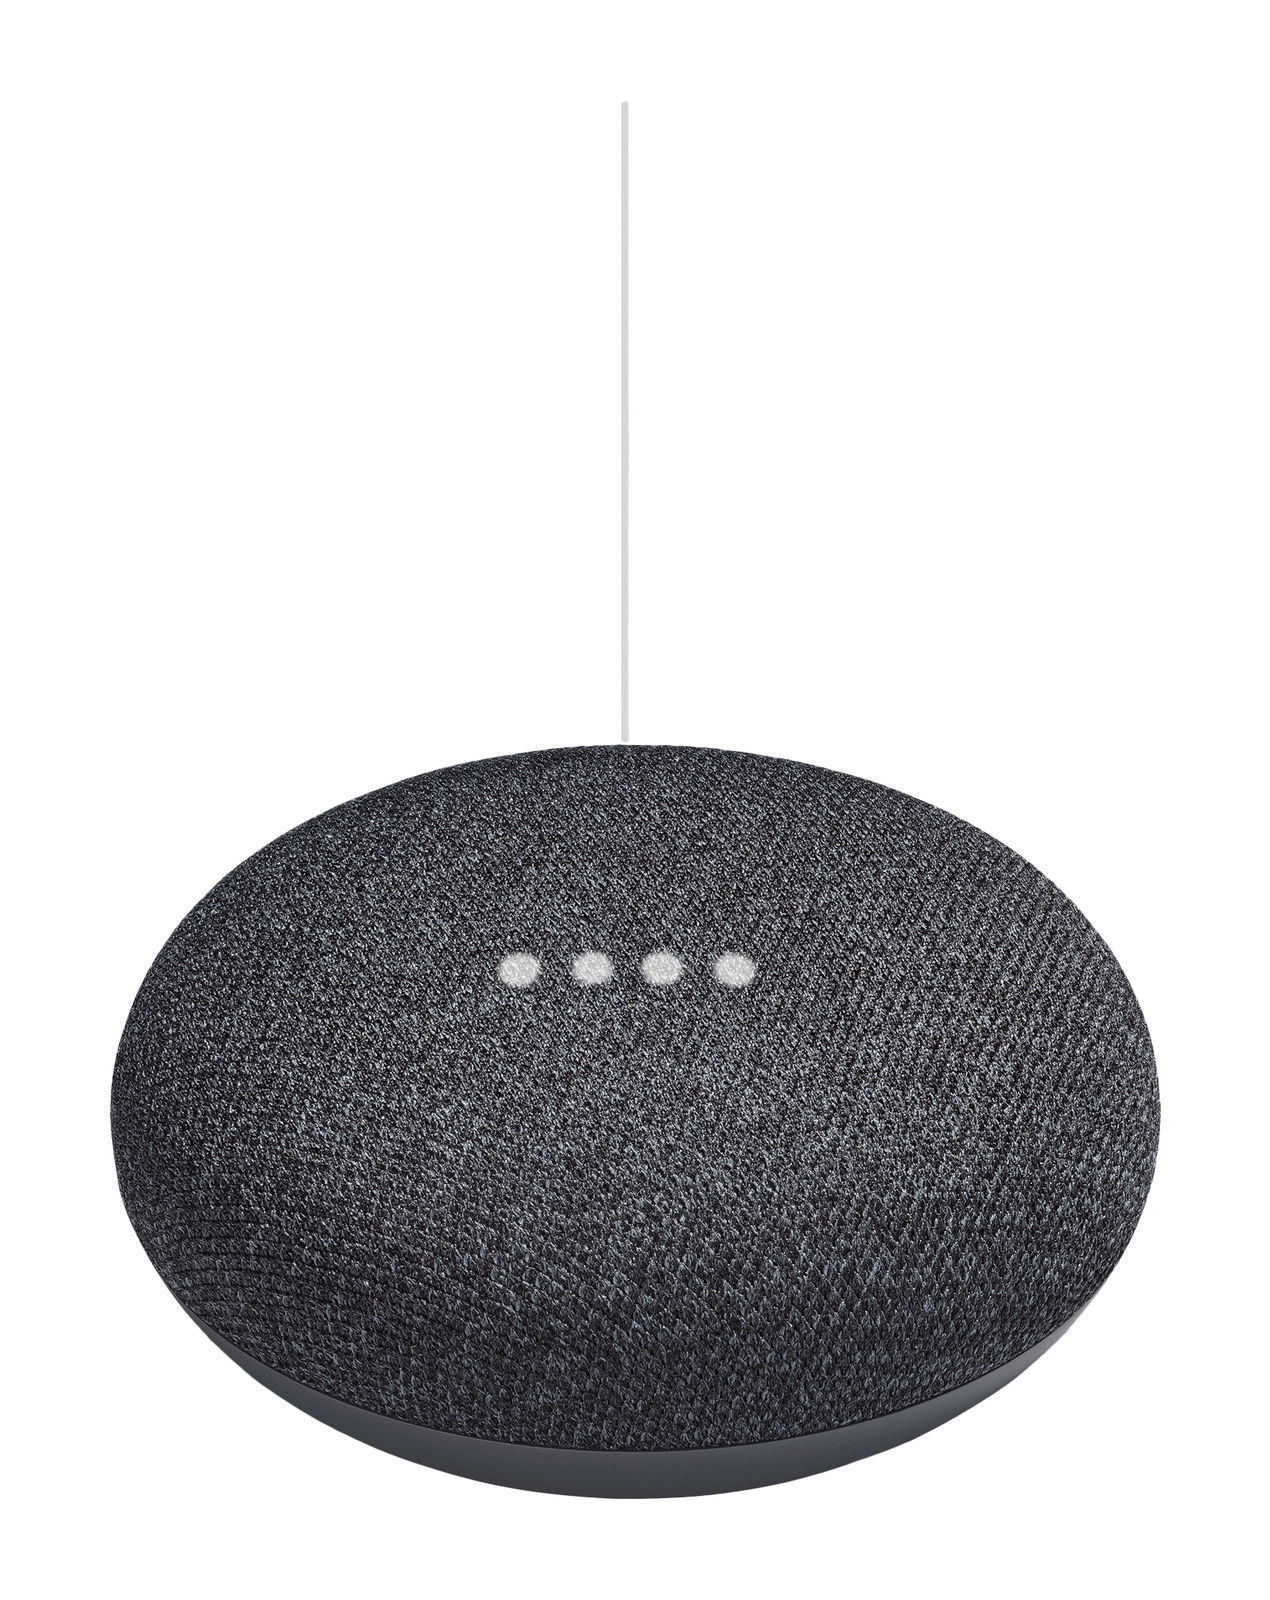 Google Home Mini Voice Activated Smart Speaker - Charcoal - Worldwide Delivery